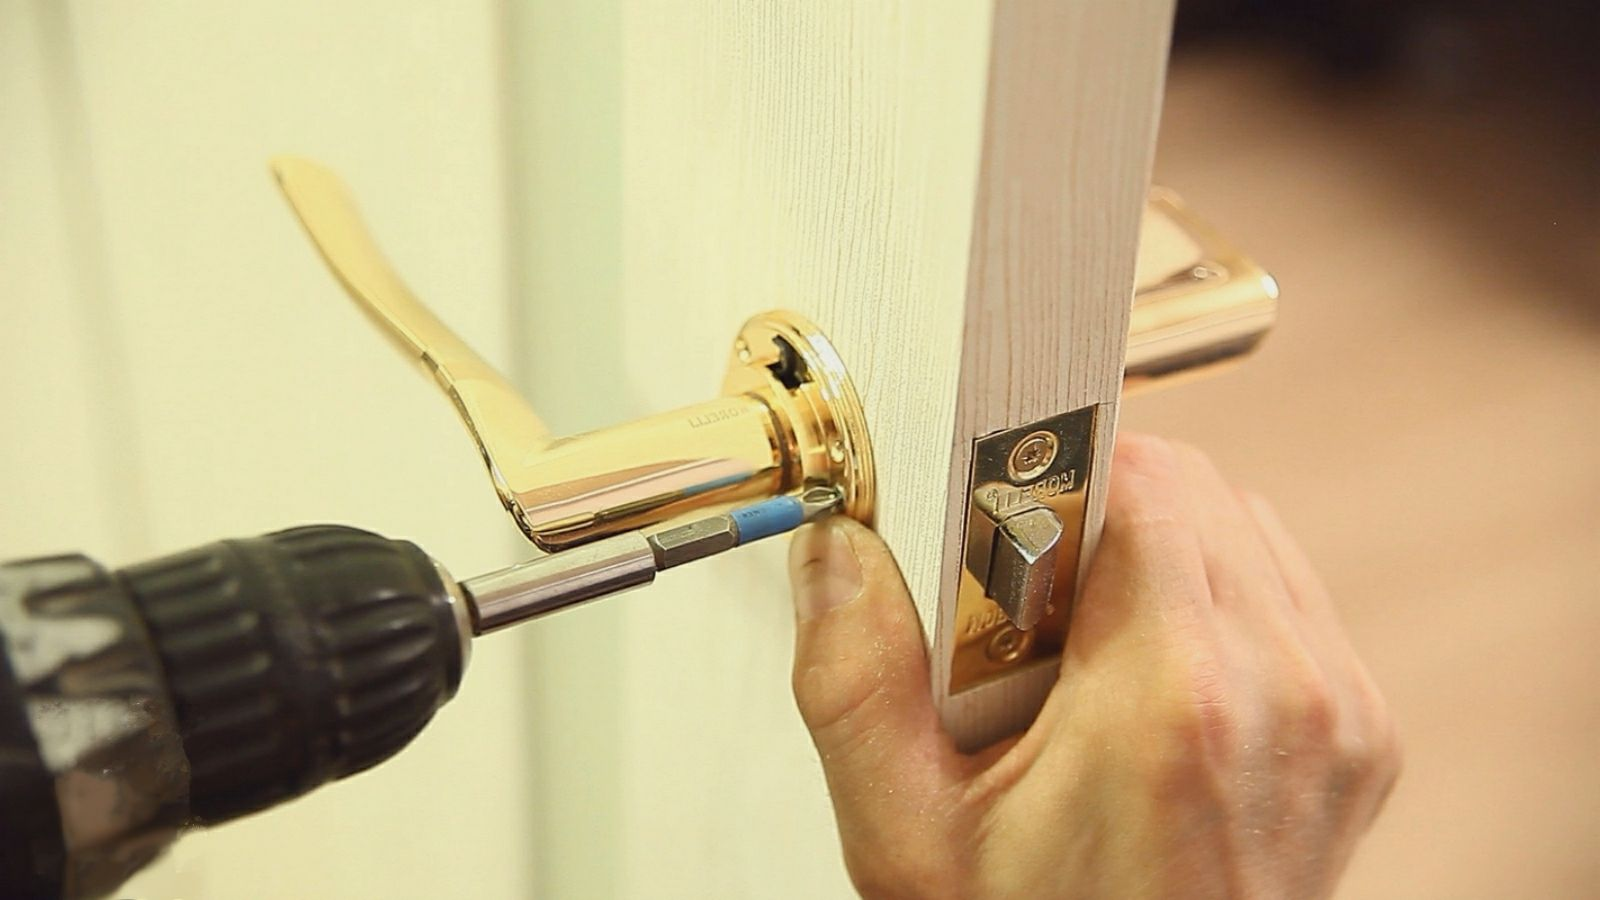 Get your home saved with the help of a locksmith lier